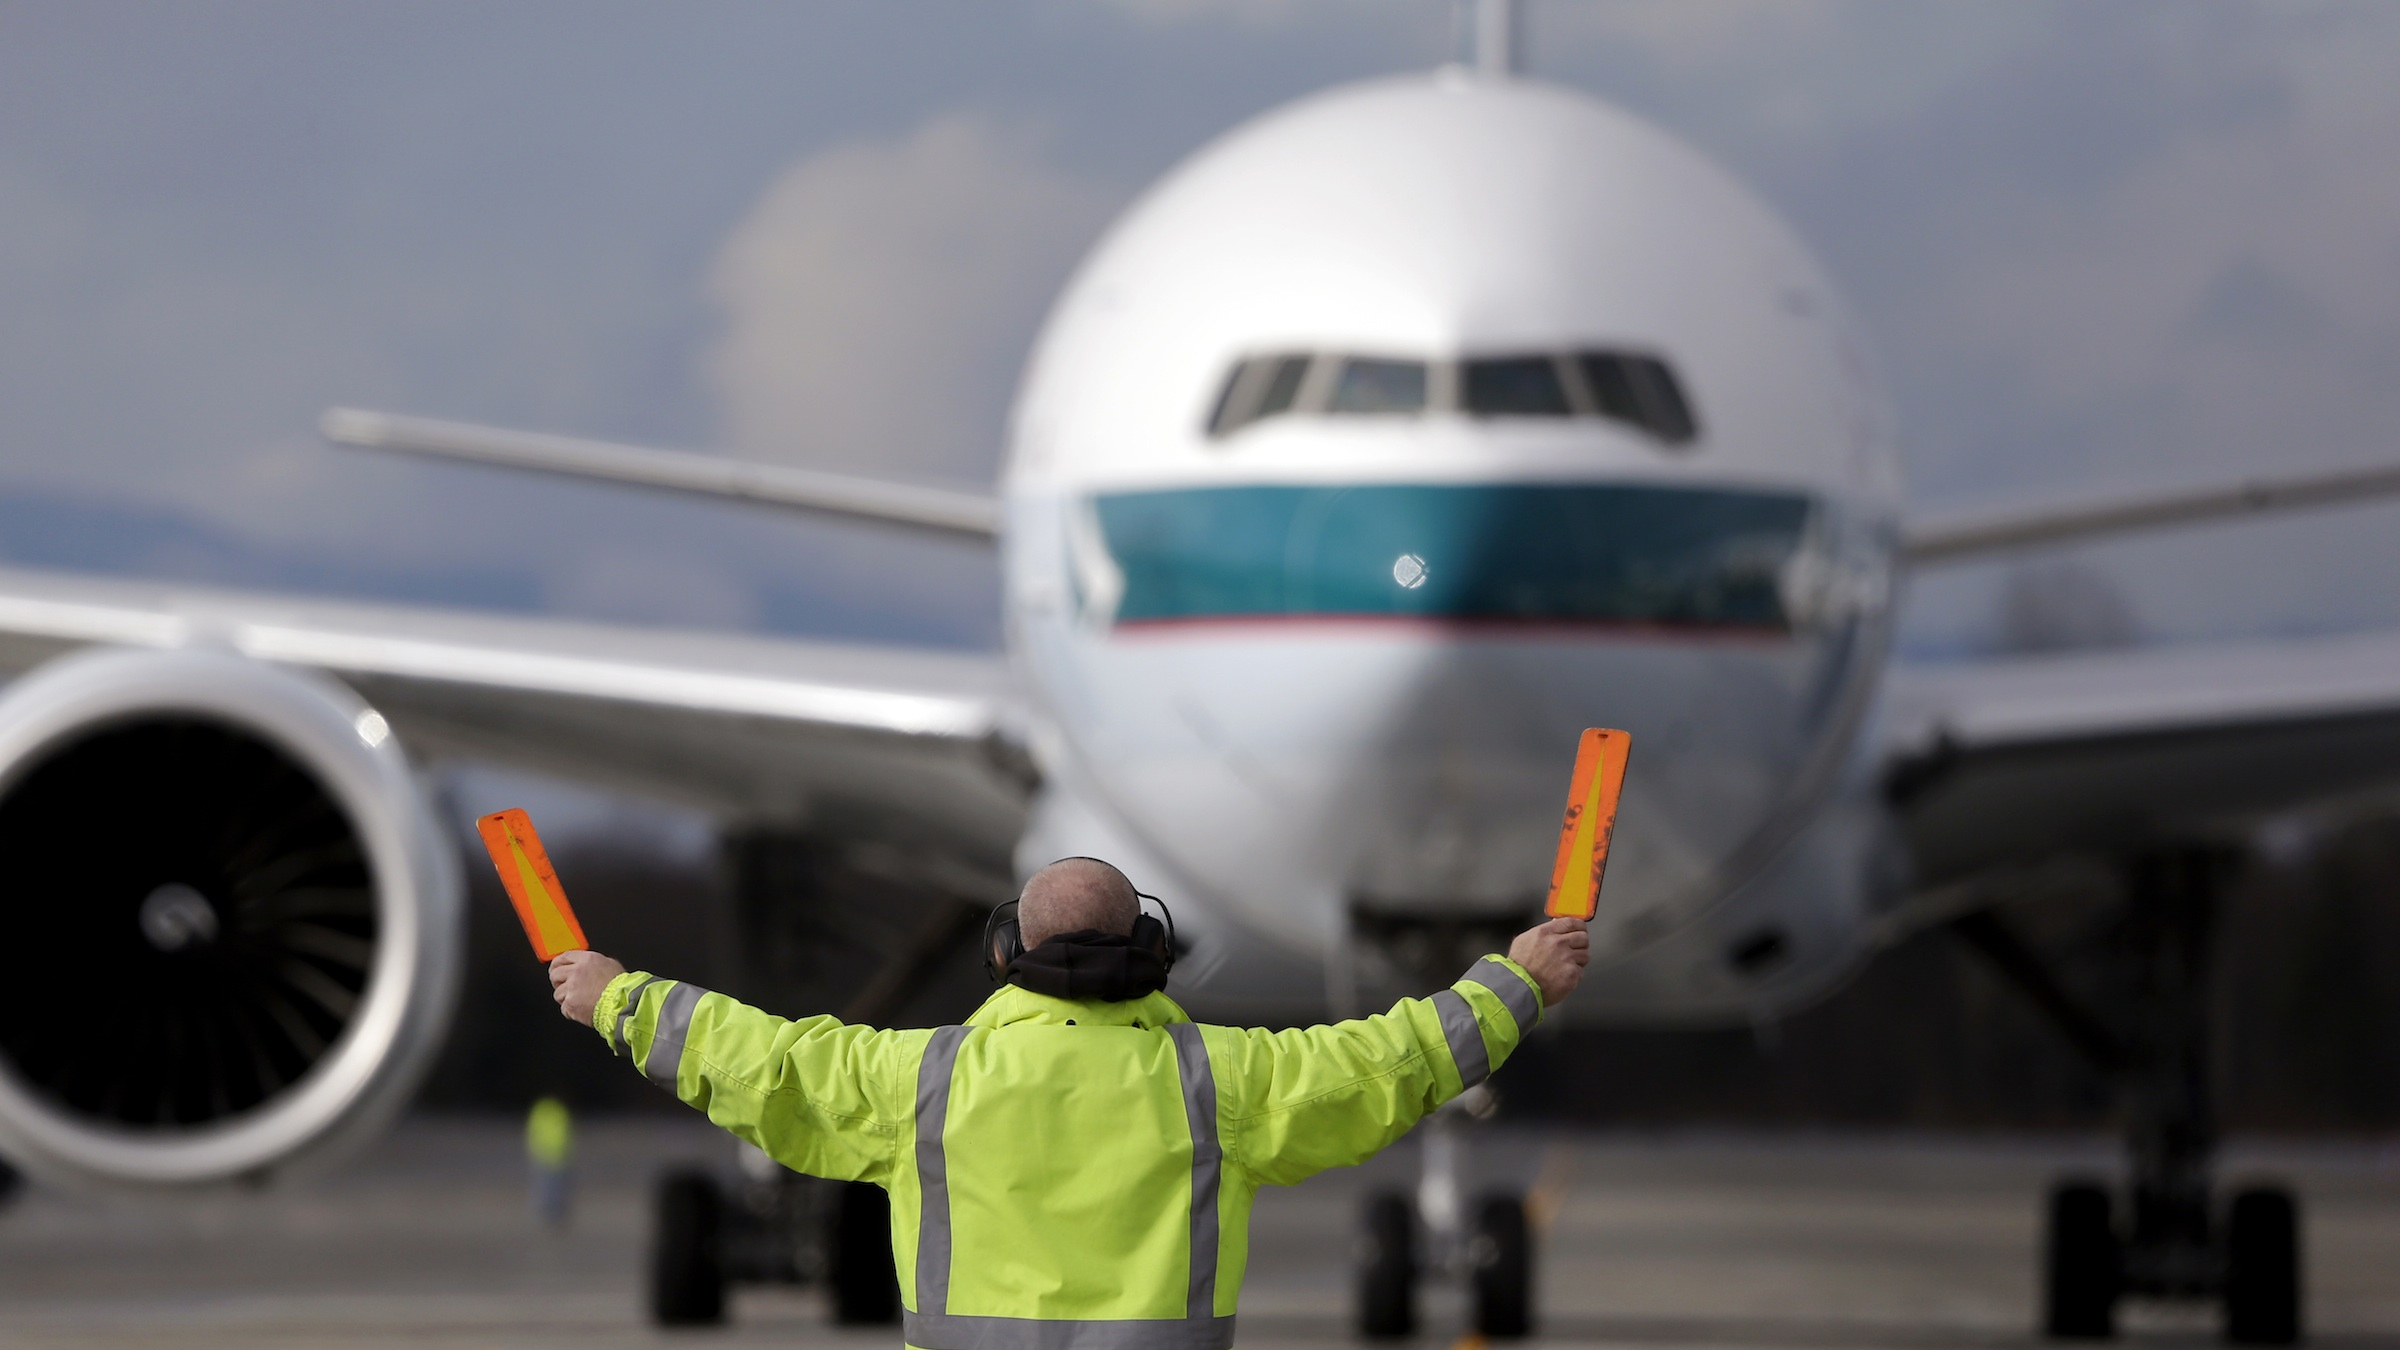 A Boeing 777-367 (ER) Cathay Pacific jet is guided to a parking spot by a marshaller at Paine Field Tuesday, Feb. 5, 2013, in Everett, Wash. (AP Photo/Elaine Thompson)